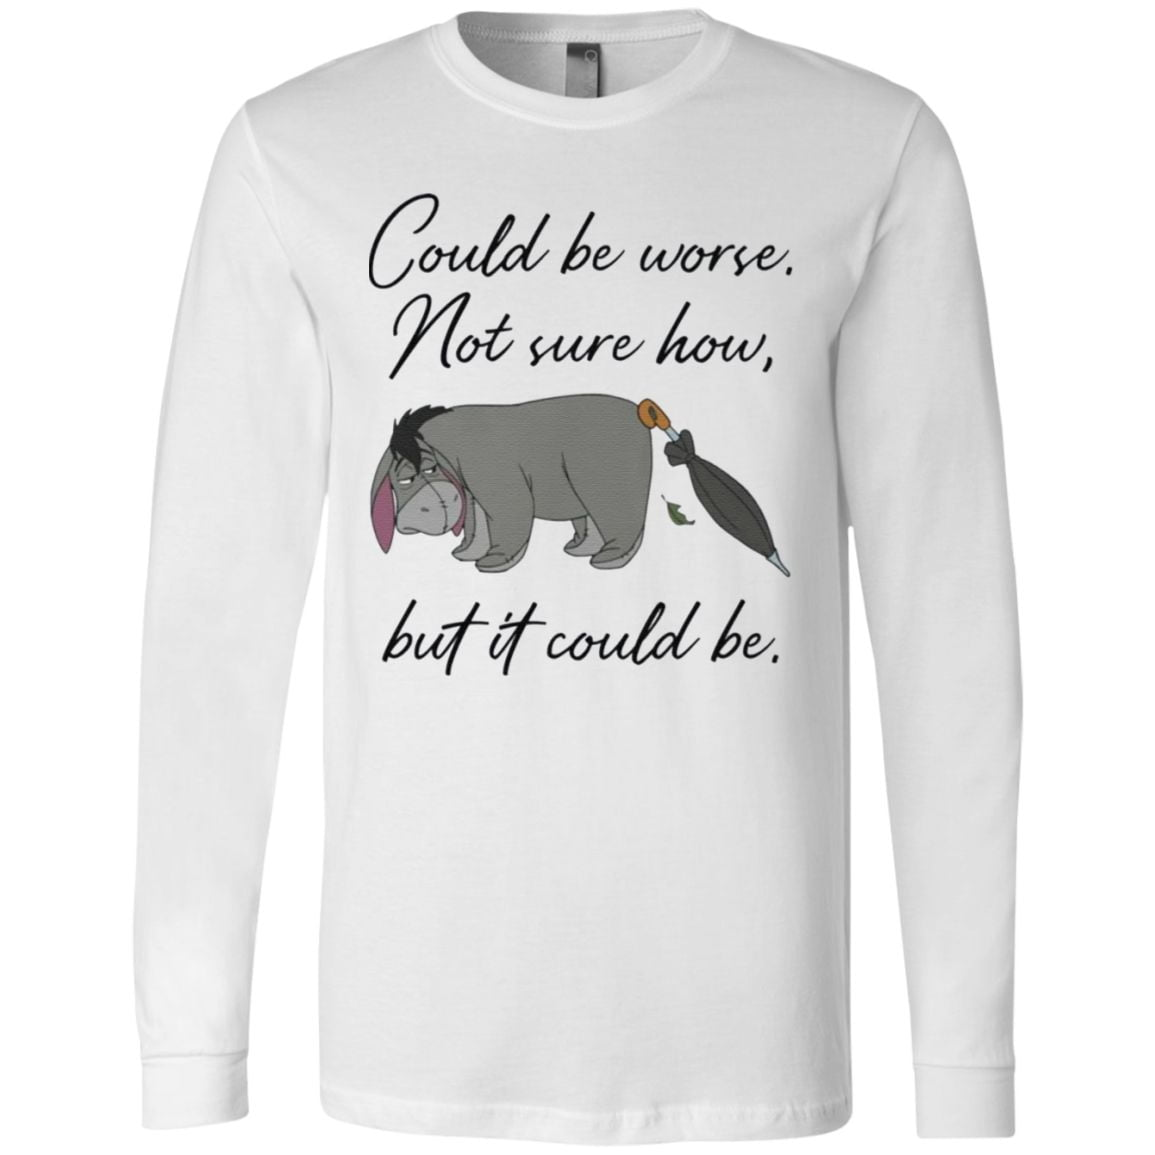 eyore could be worse not sure how but it could be tshirt